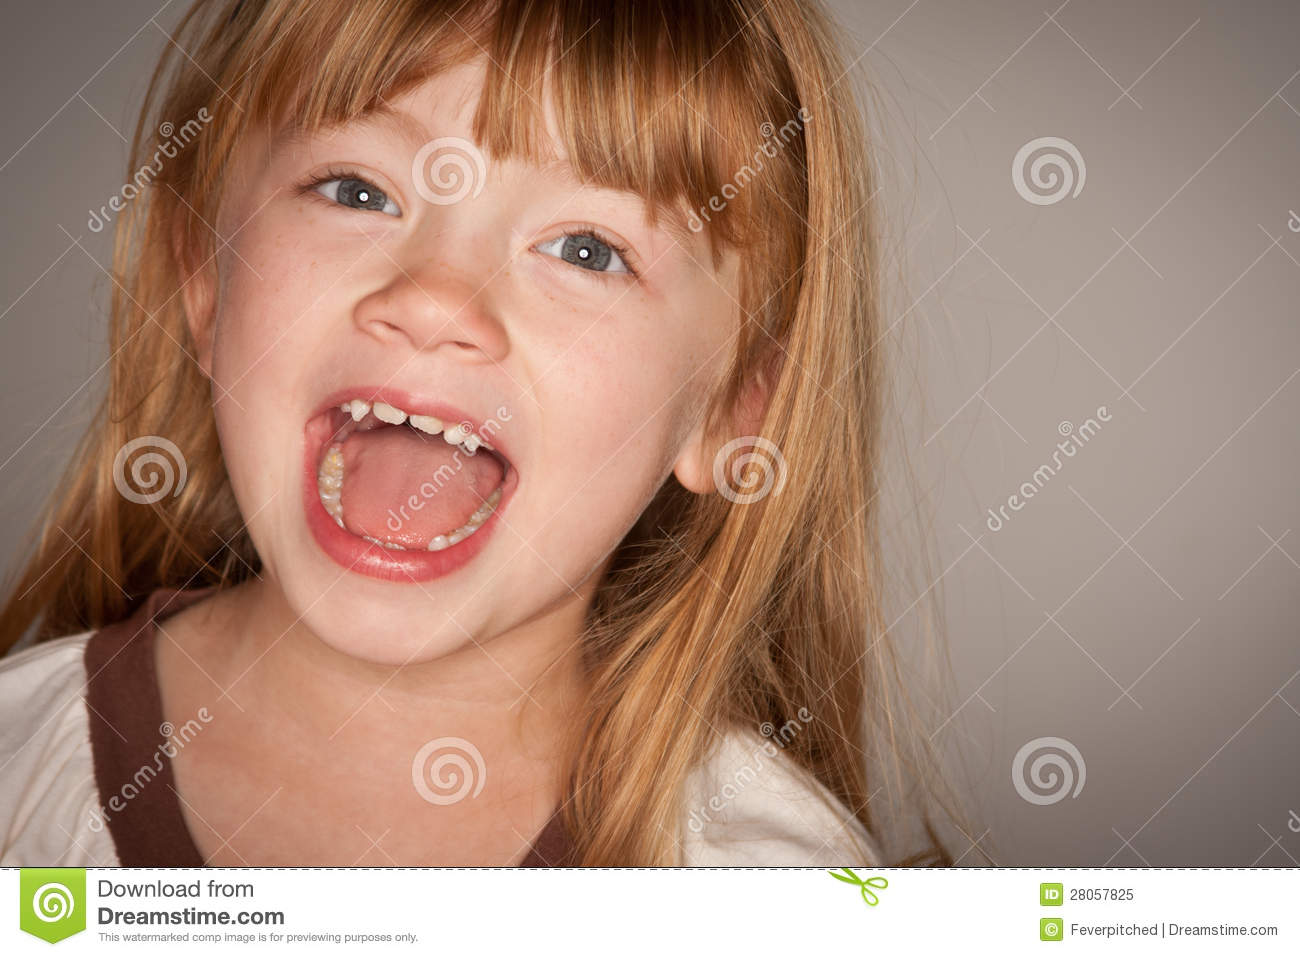 Adorable Red Haired Girl Laughing on Grey